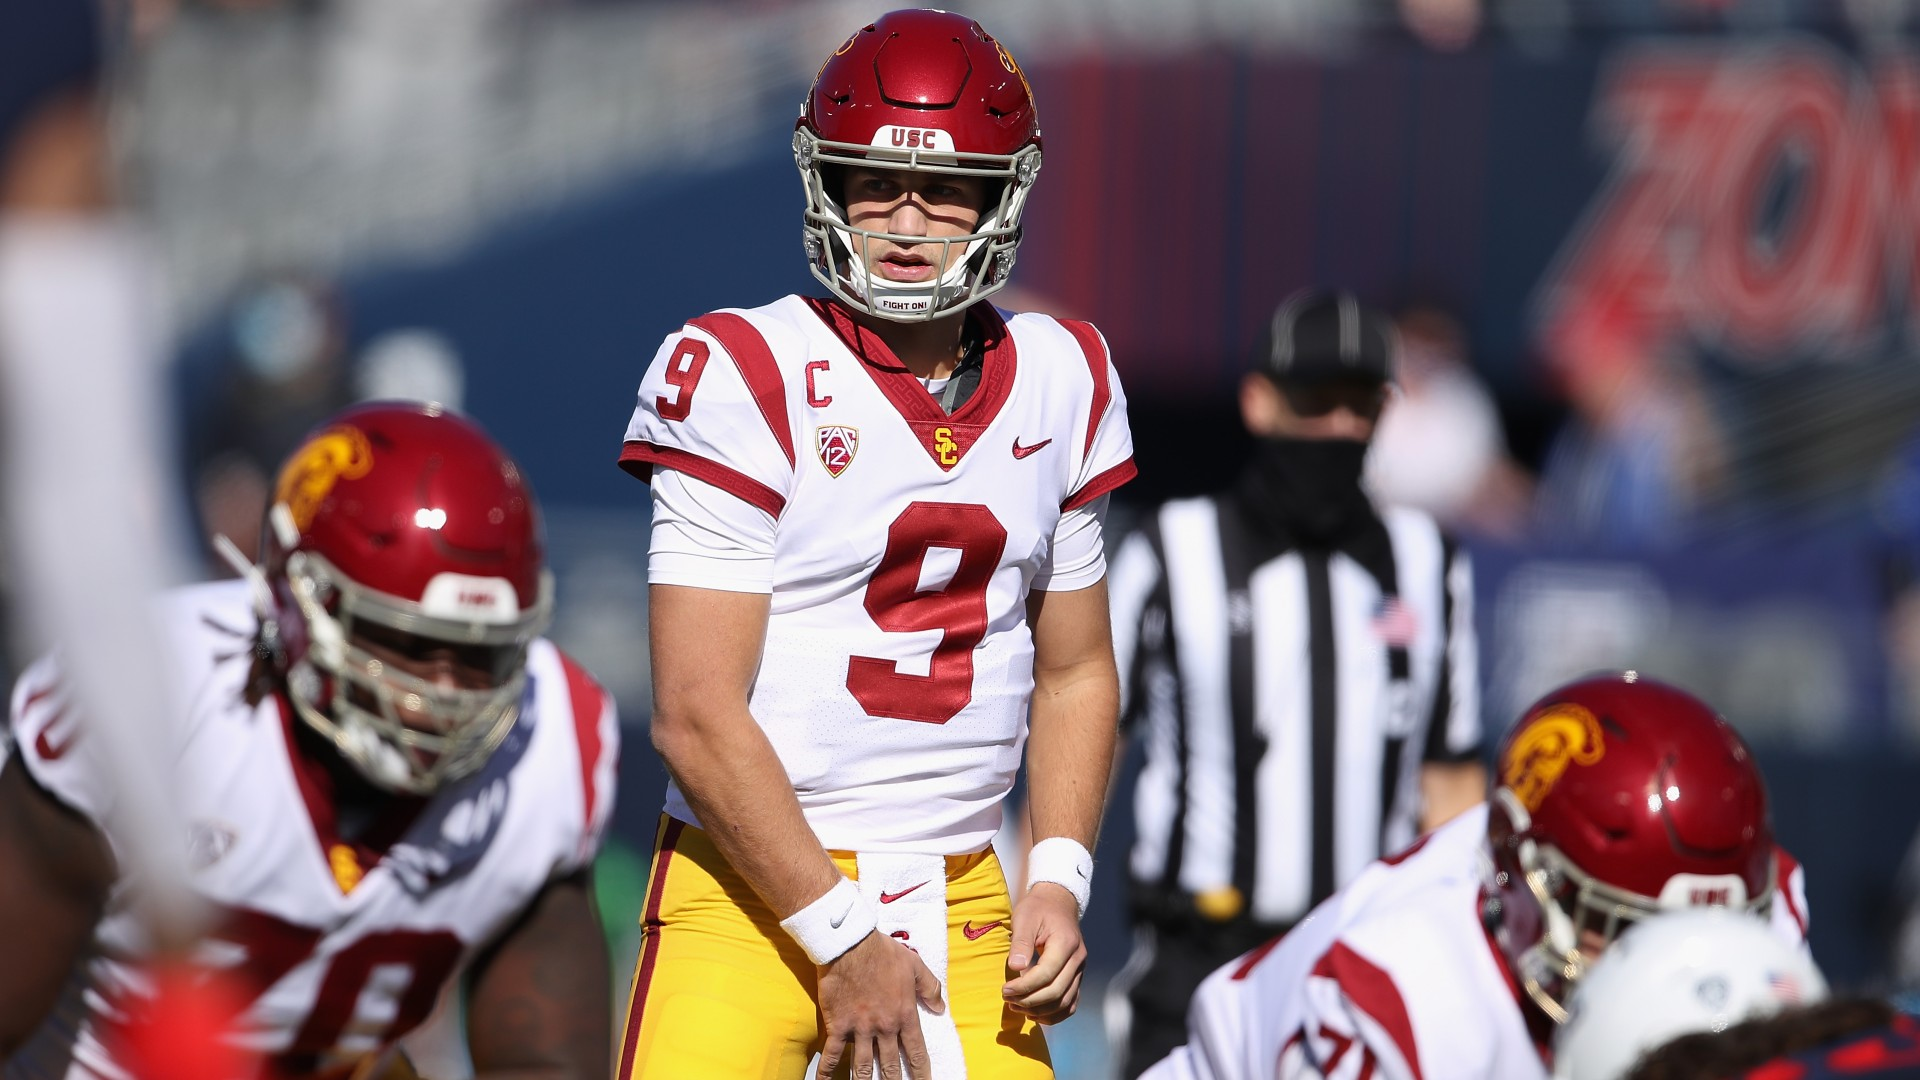 College Football Odds & Picks for USC vs. Utah: Bet Against Both Teams by Taking the Under article feature image